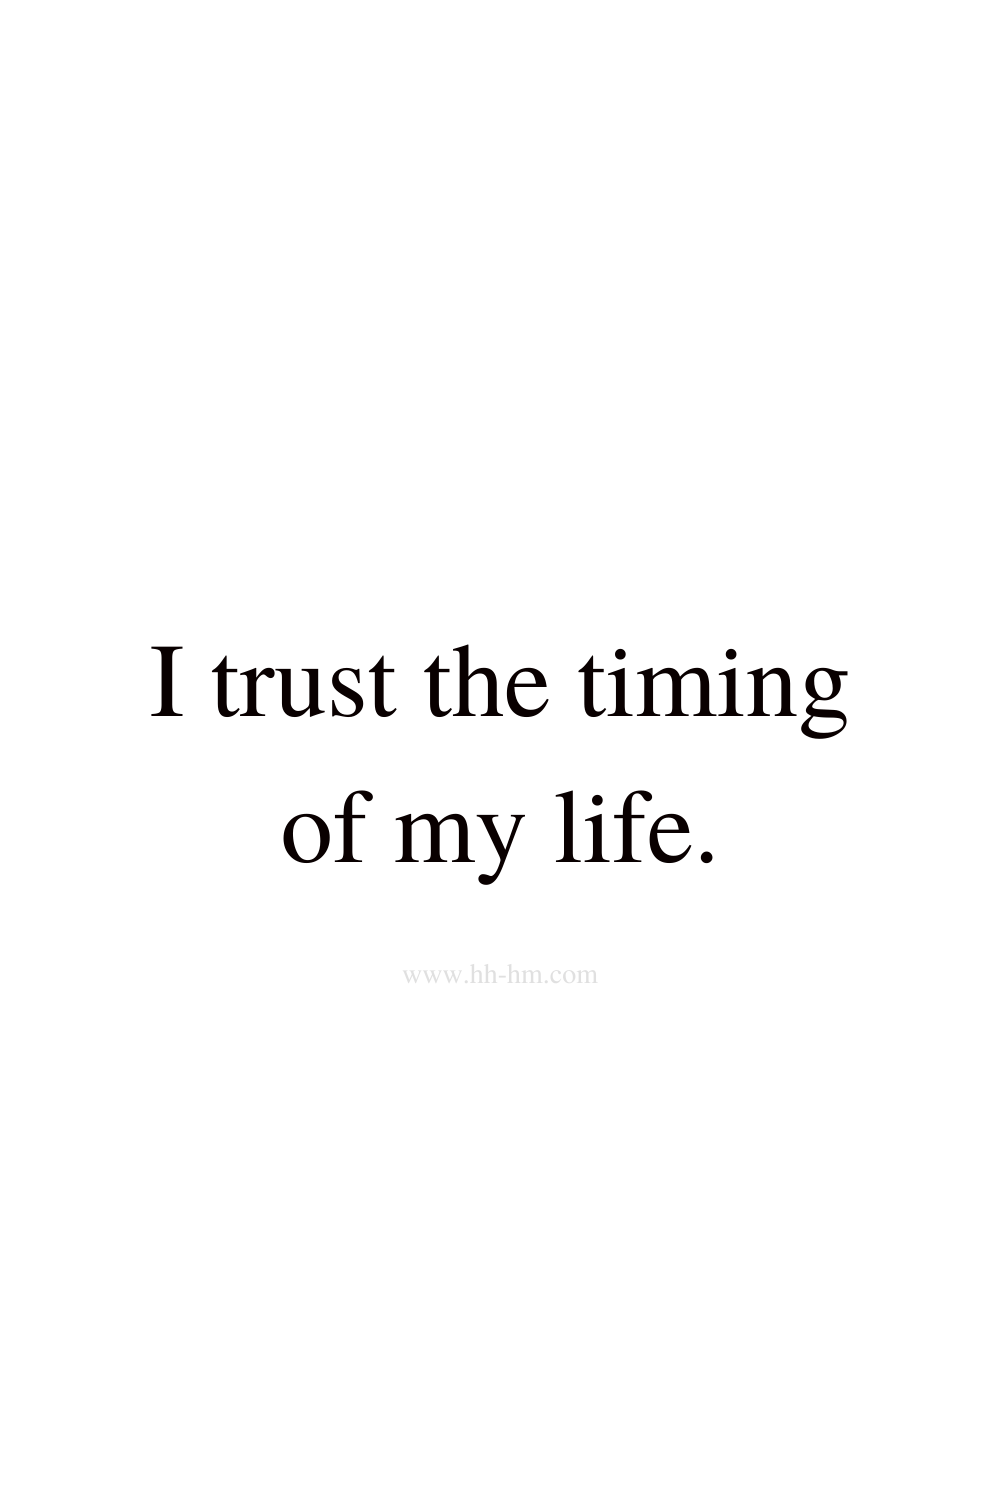 I trust the timing of my life - positive affirmations for happiness.